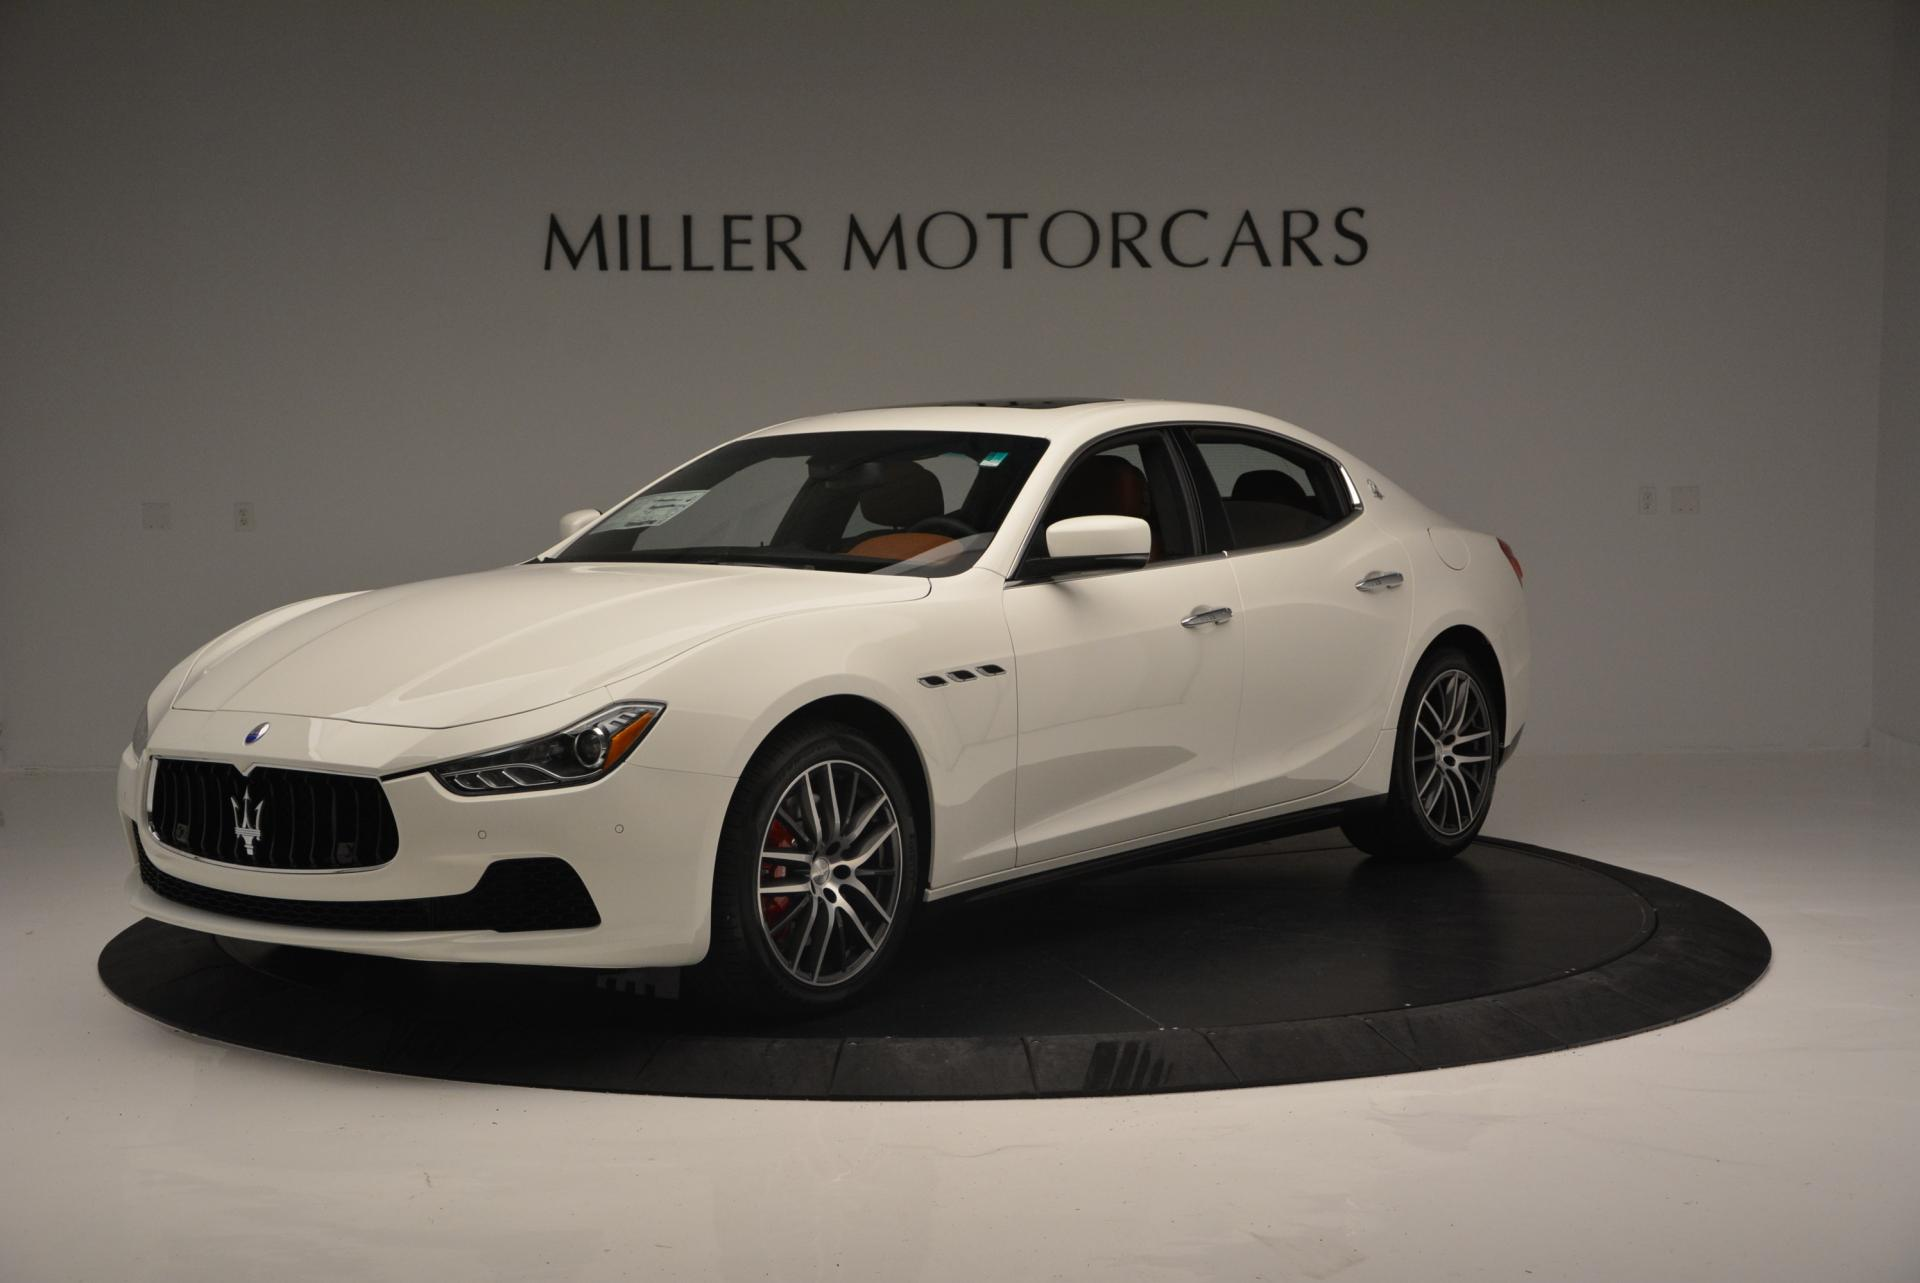 New 2016 Maserati Ghibli S Q4 For Sale In Westport, CT 118_main